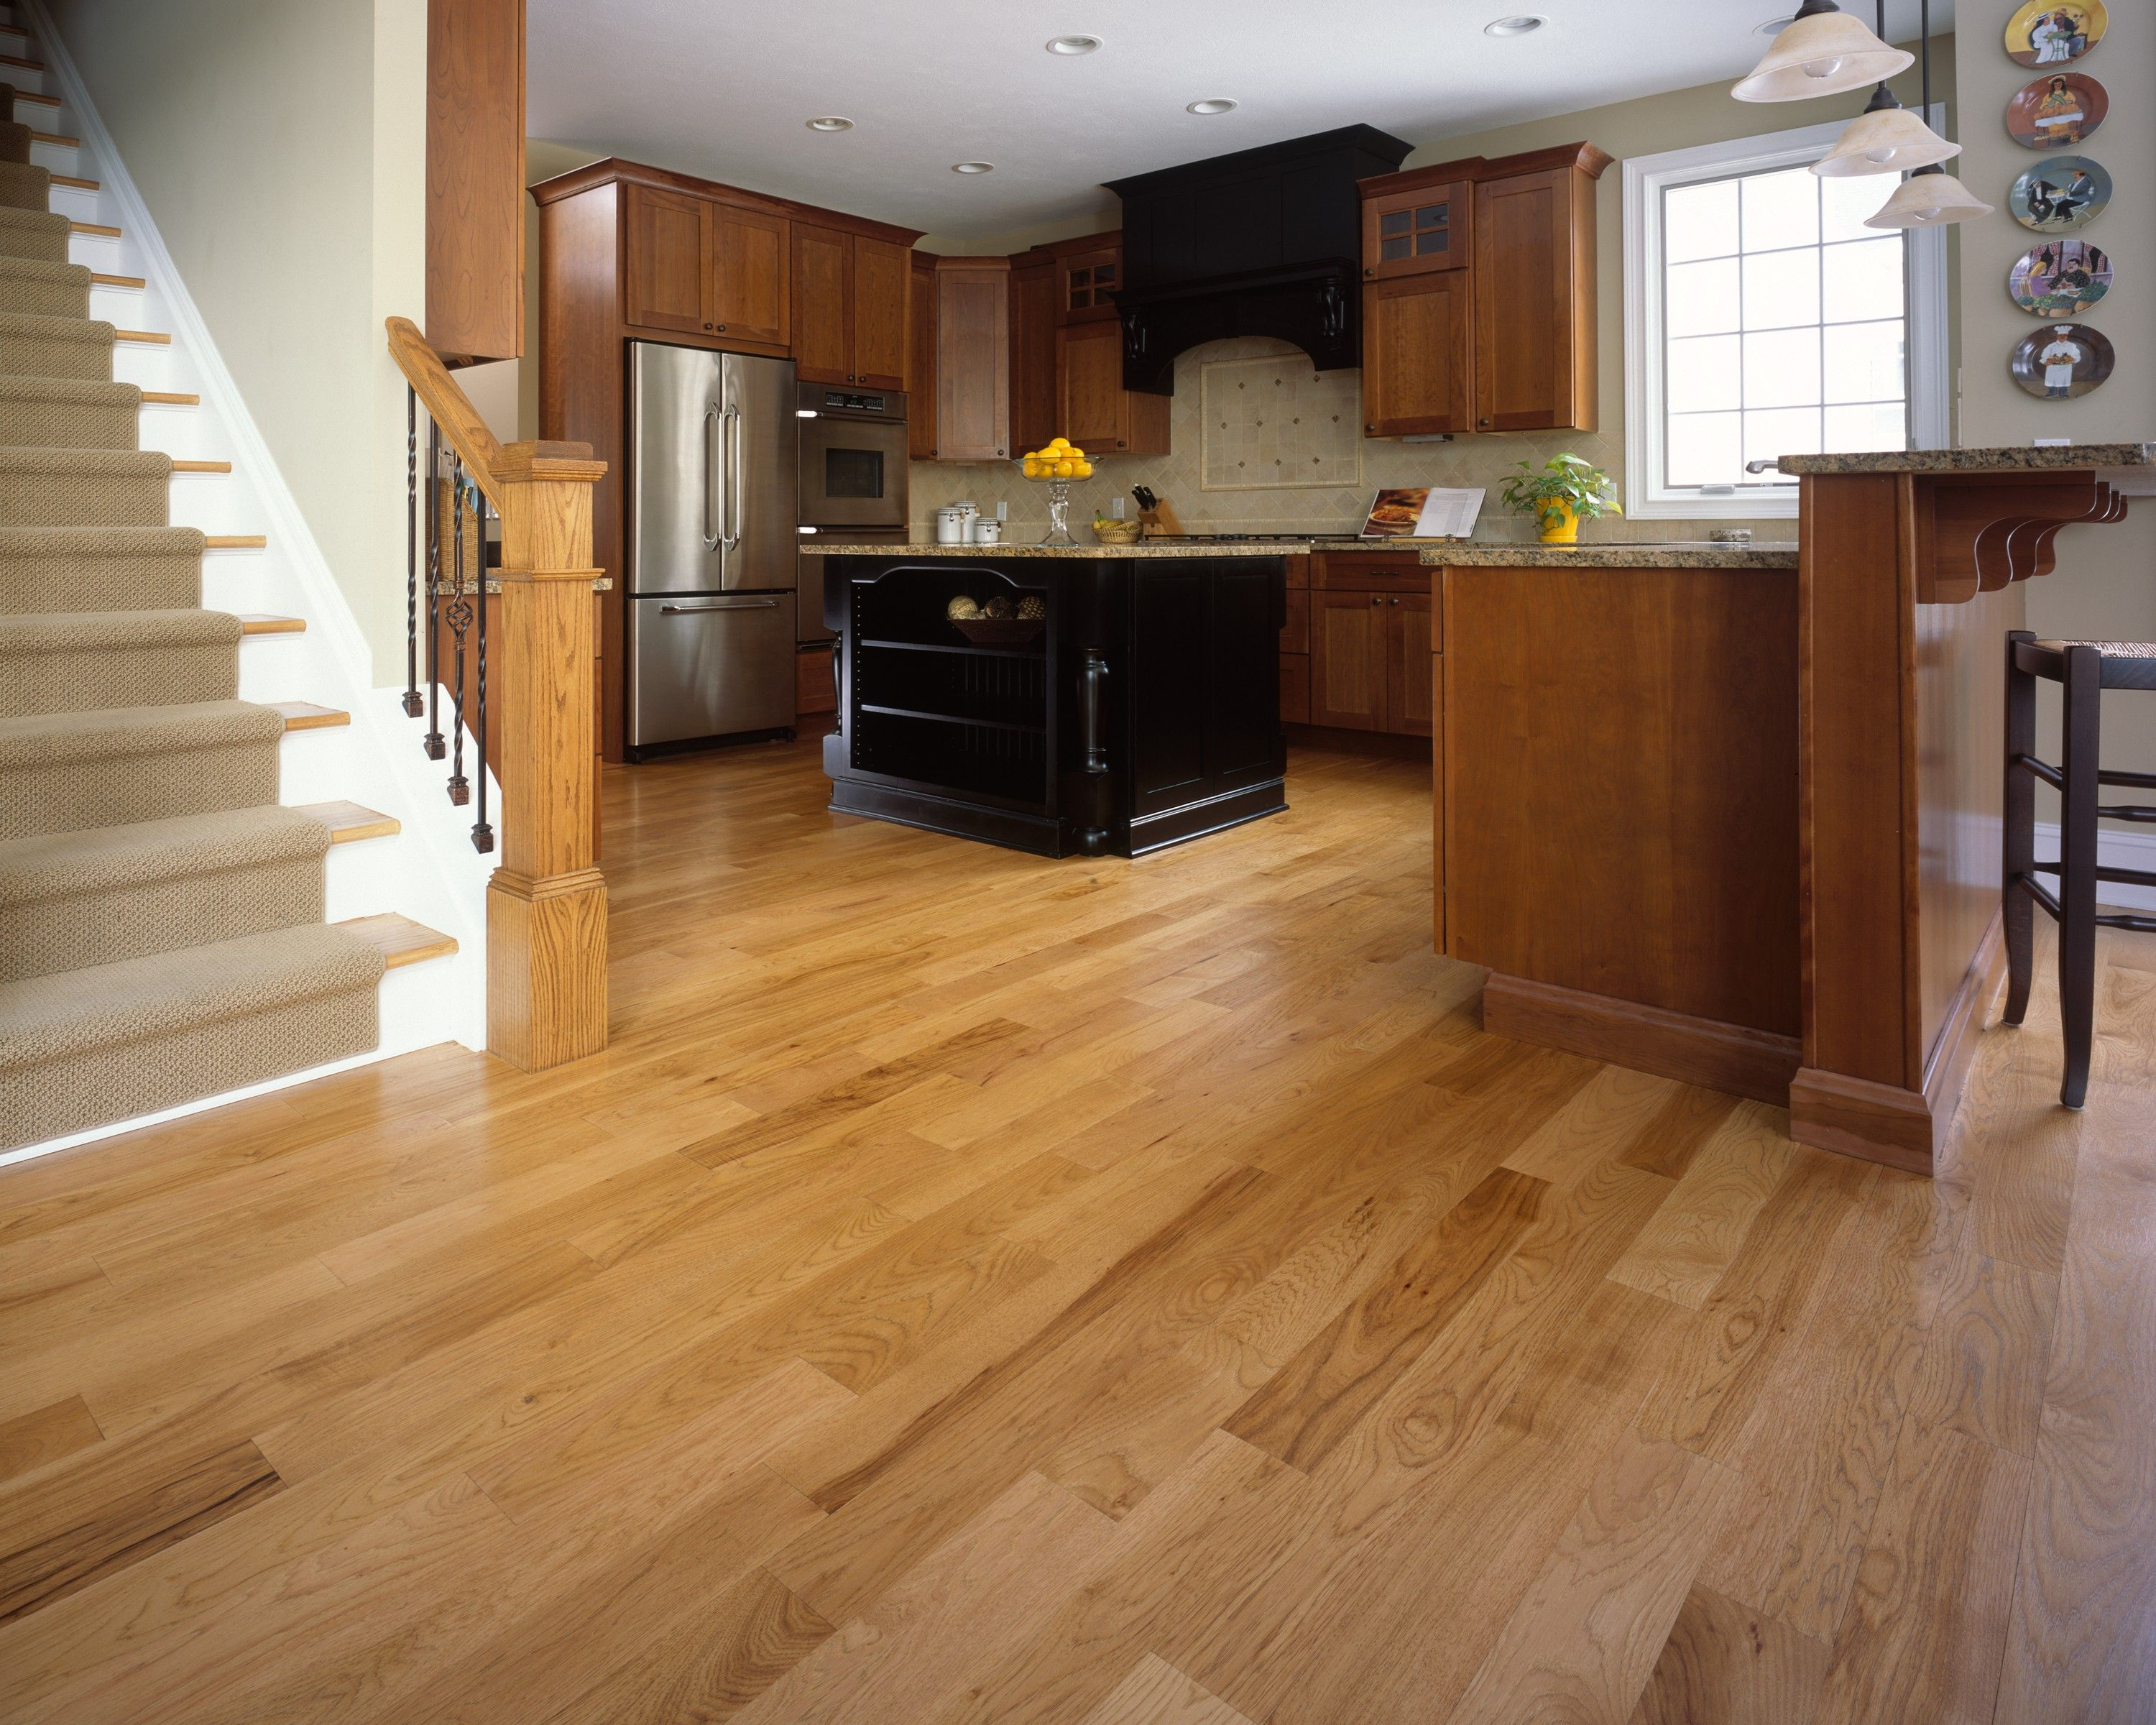 Flooring Appealing Floor And Decor Roswell With Brown Baseboard And Wainscoting Panels Plus Peel And